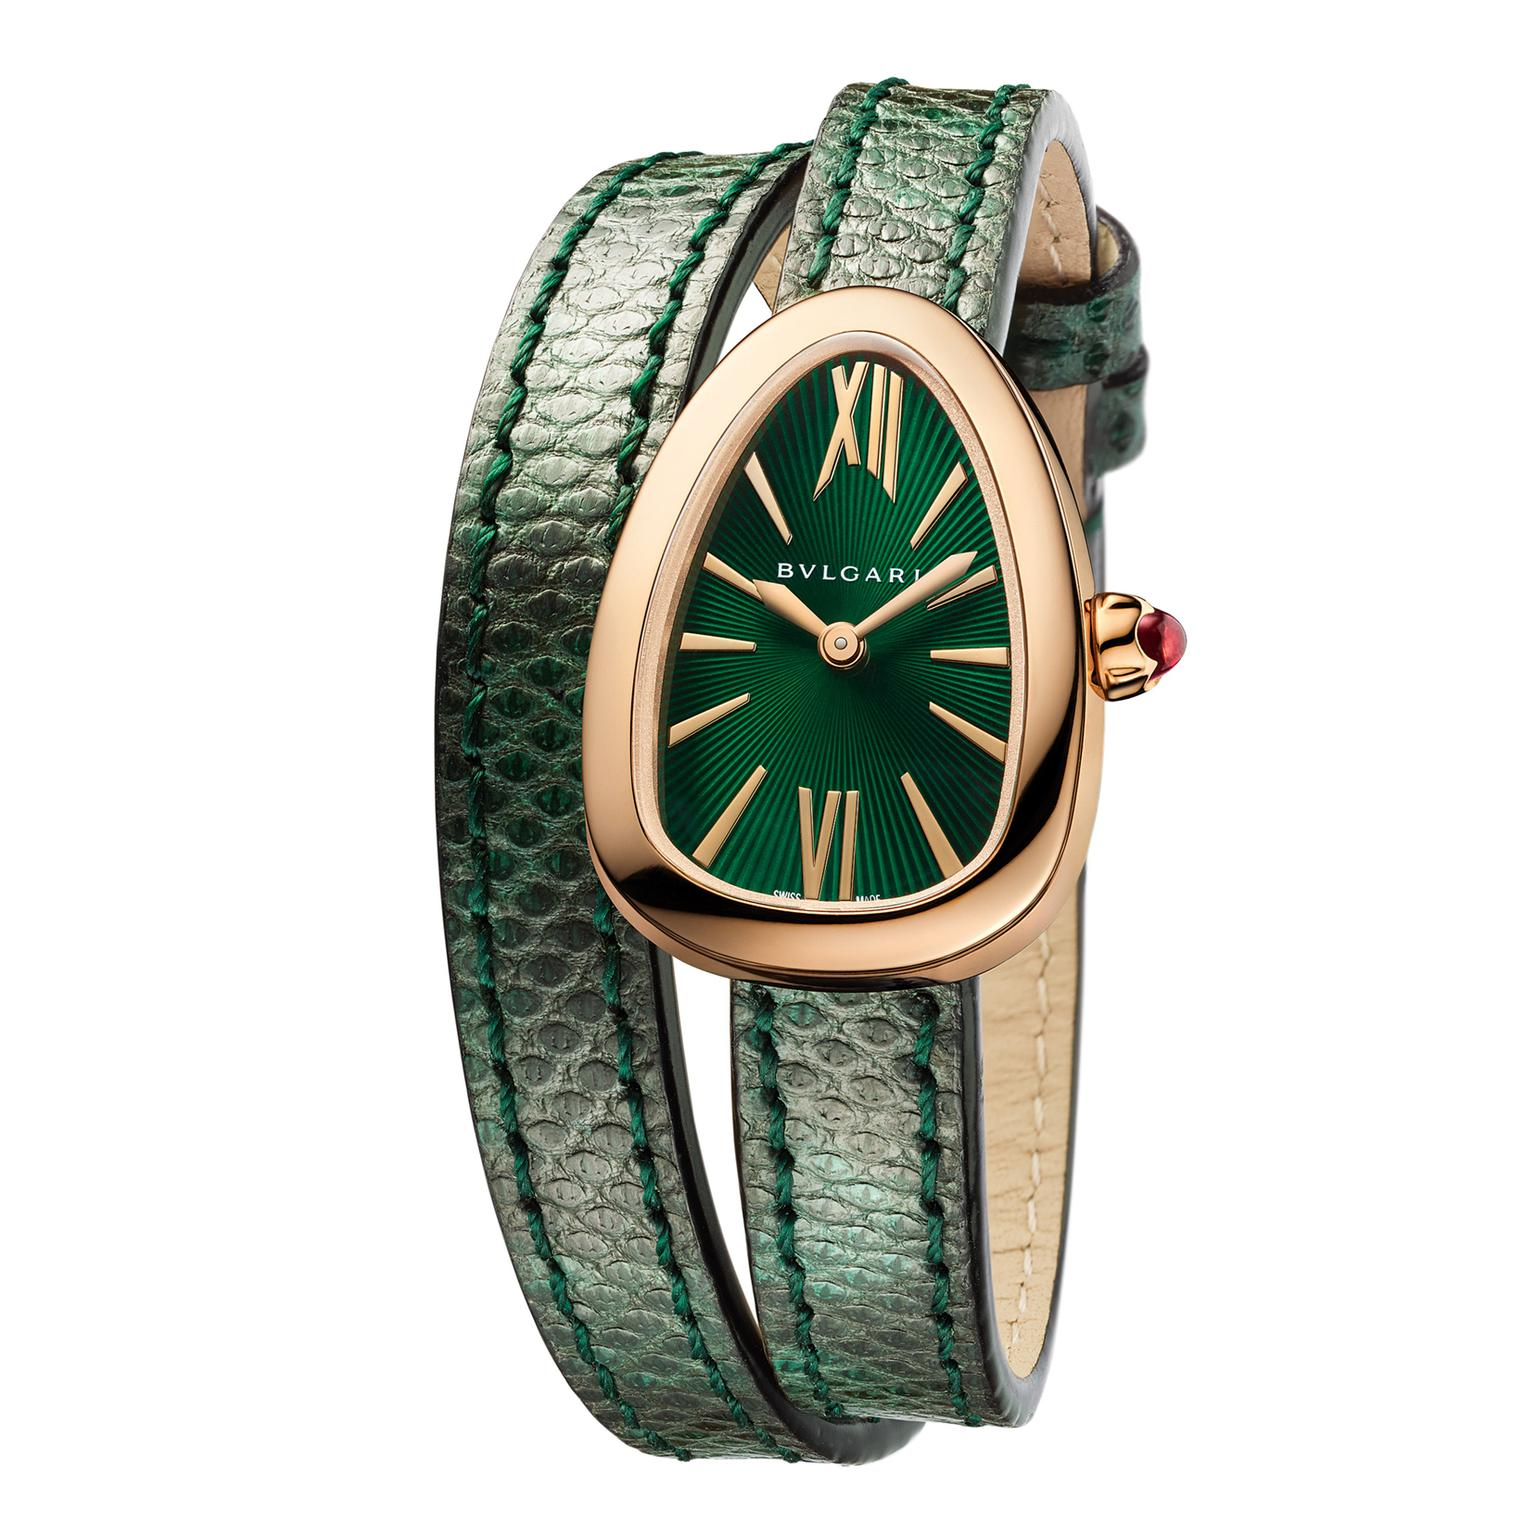 Bulgari Serpenti watch in yellow gold with green dial